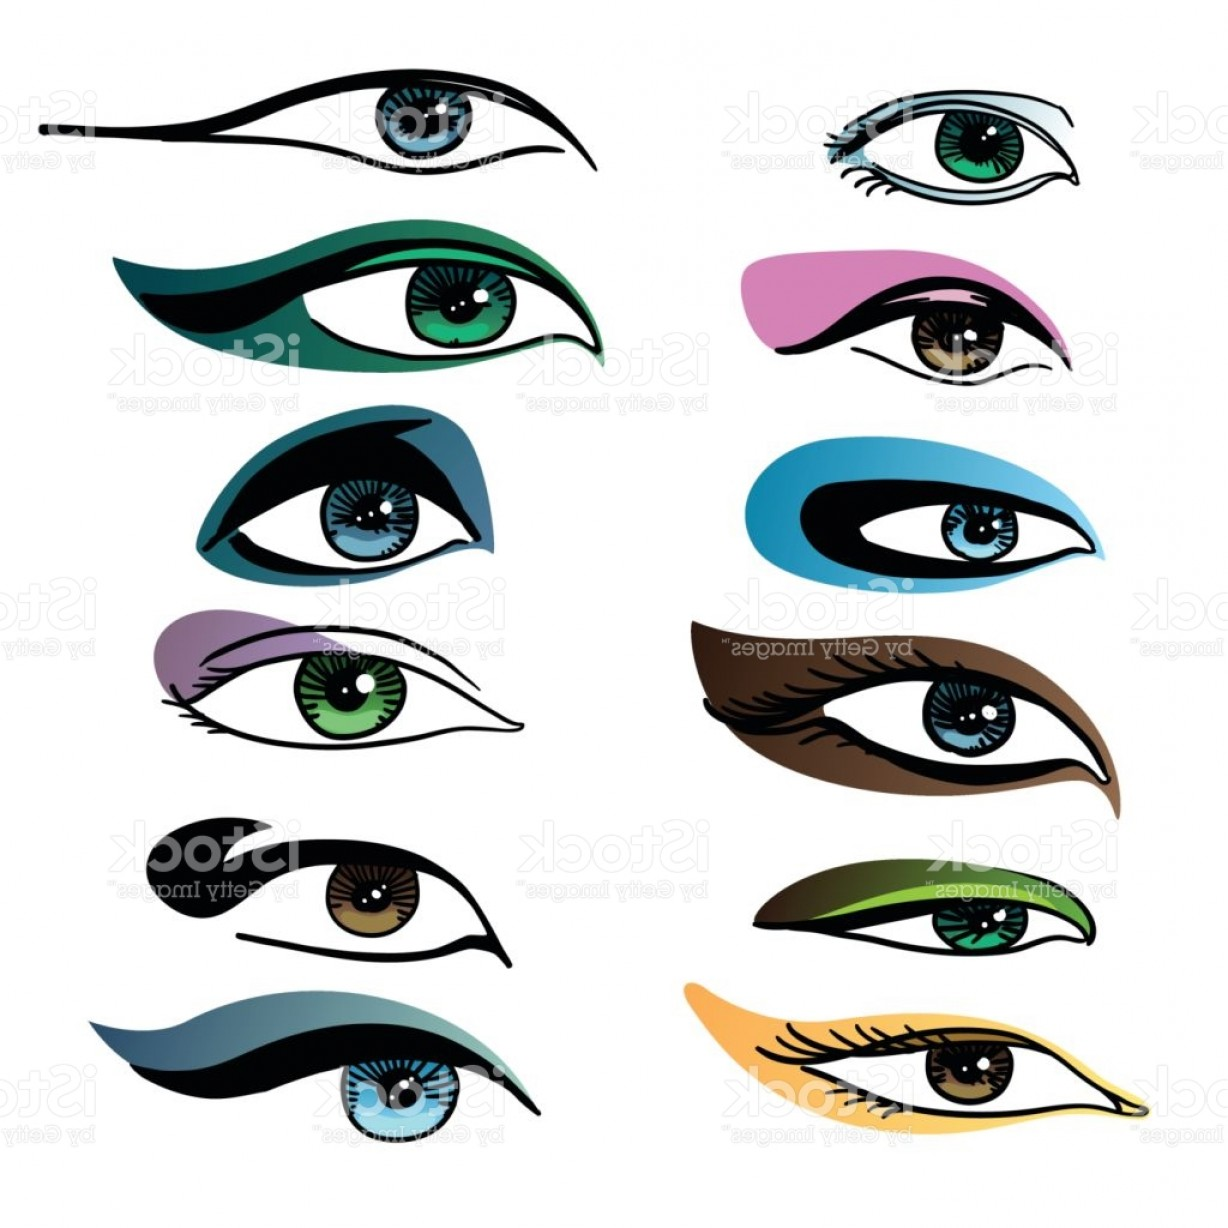 Vector Illustration Eyes Makeup: Makeup For Different Eye Vector Set Of Different Shapes Of Eyes On White Background Gm